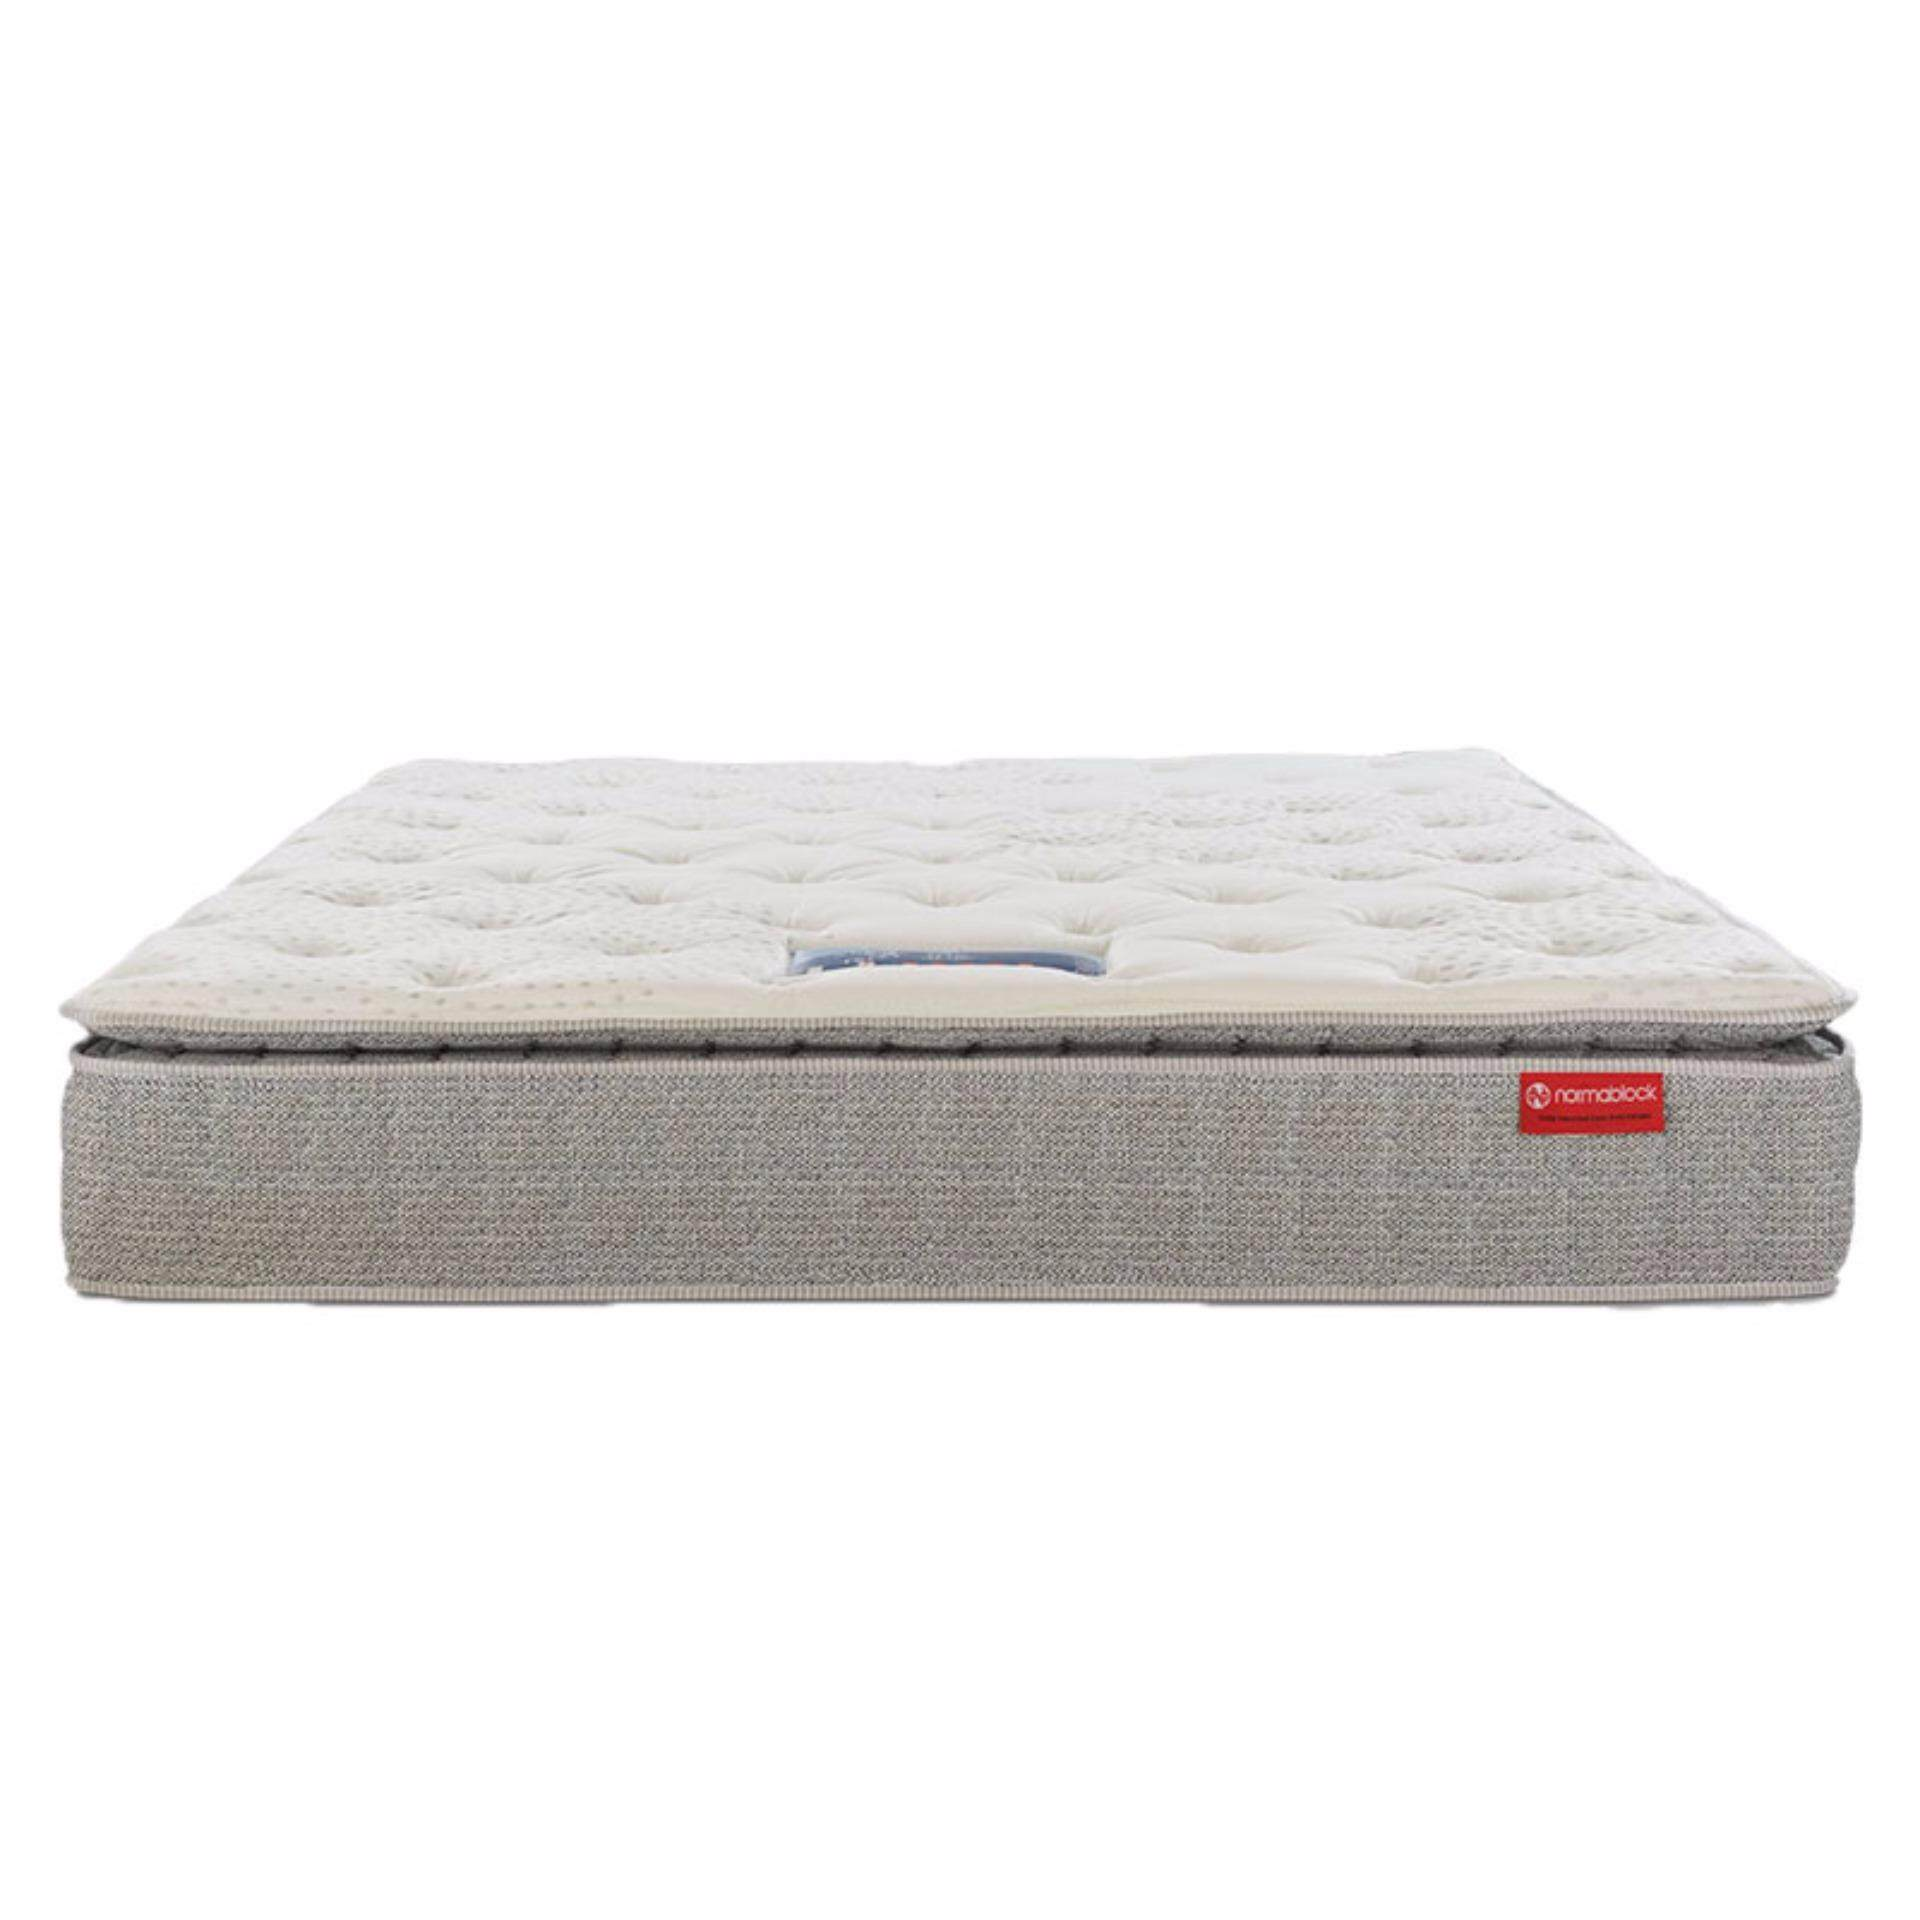 Dunlopillo Iris Queen Mattress 11 inch with Latex Pillow Top | Lazada  Malaysia